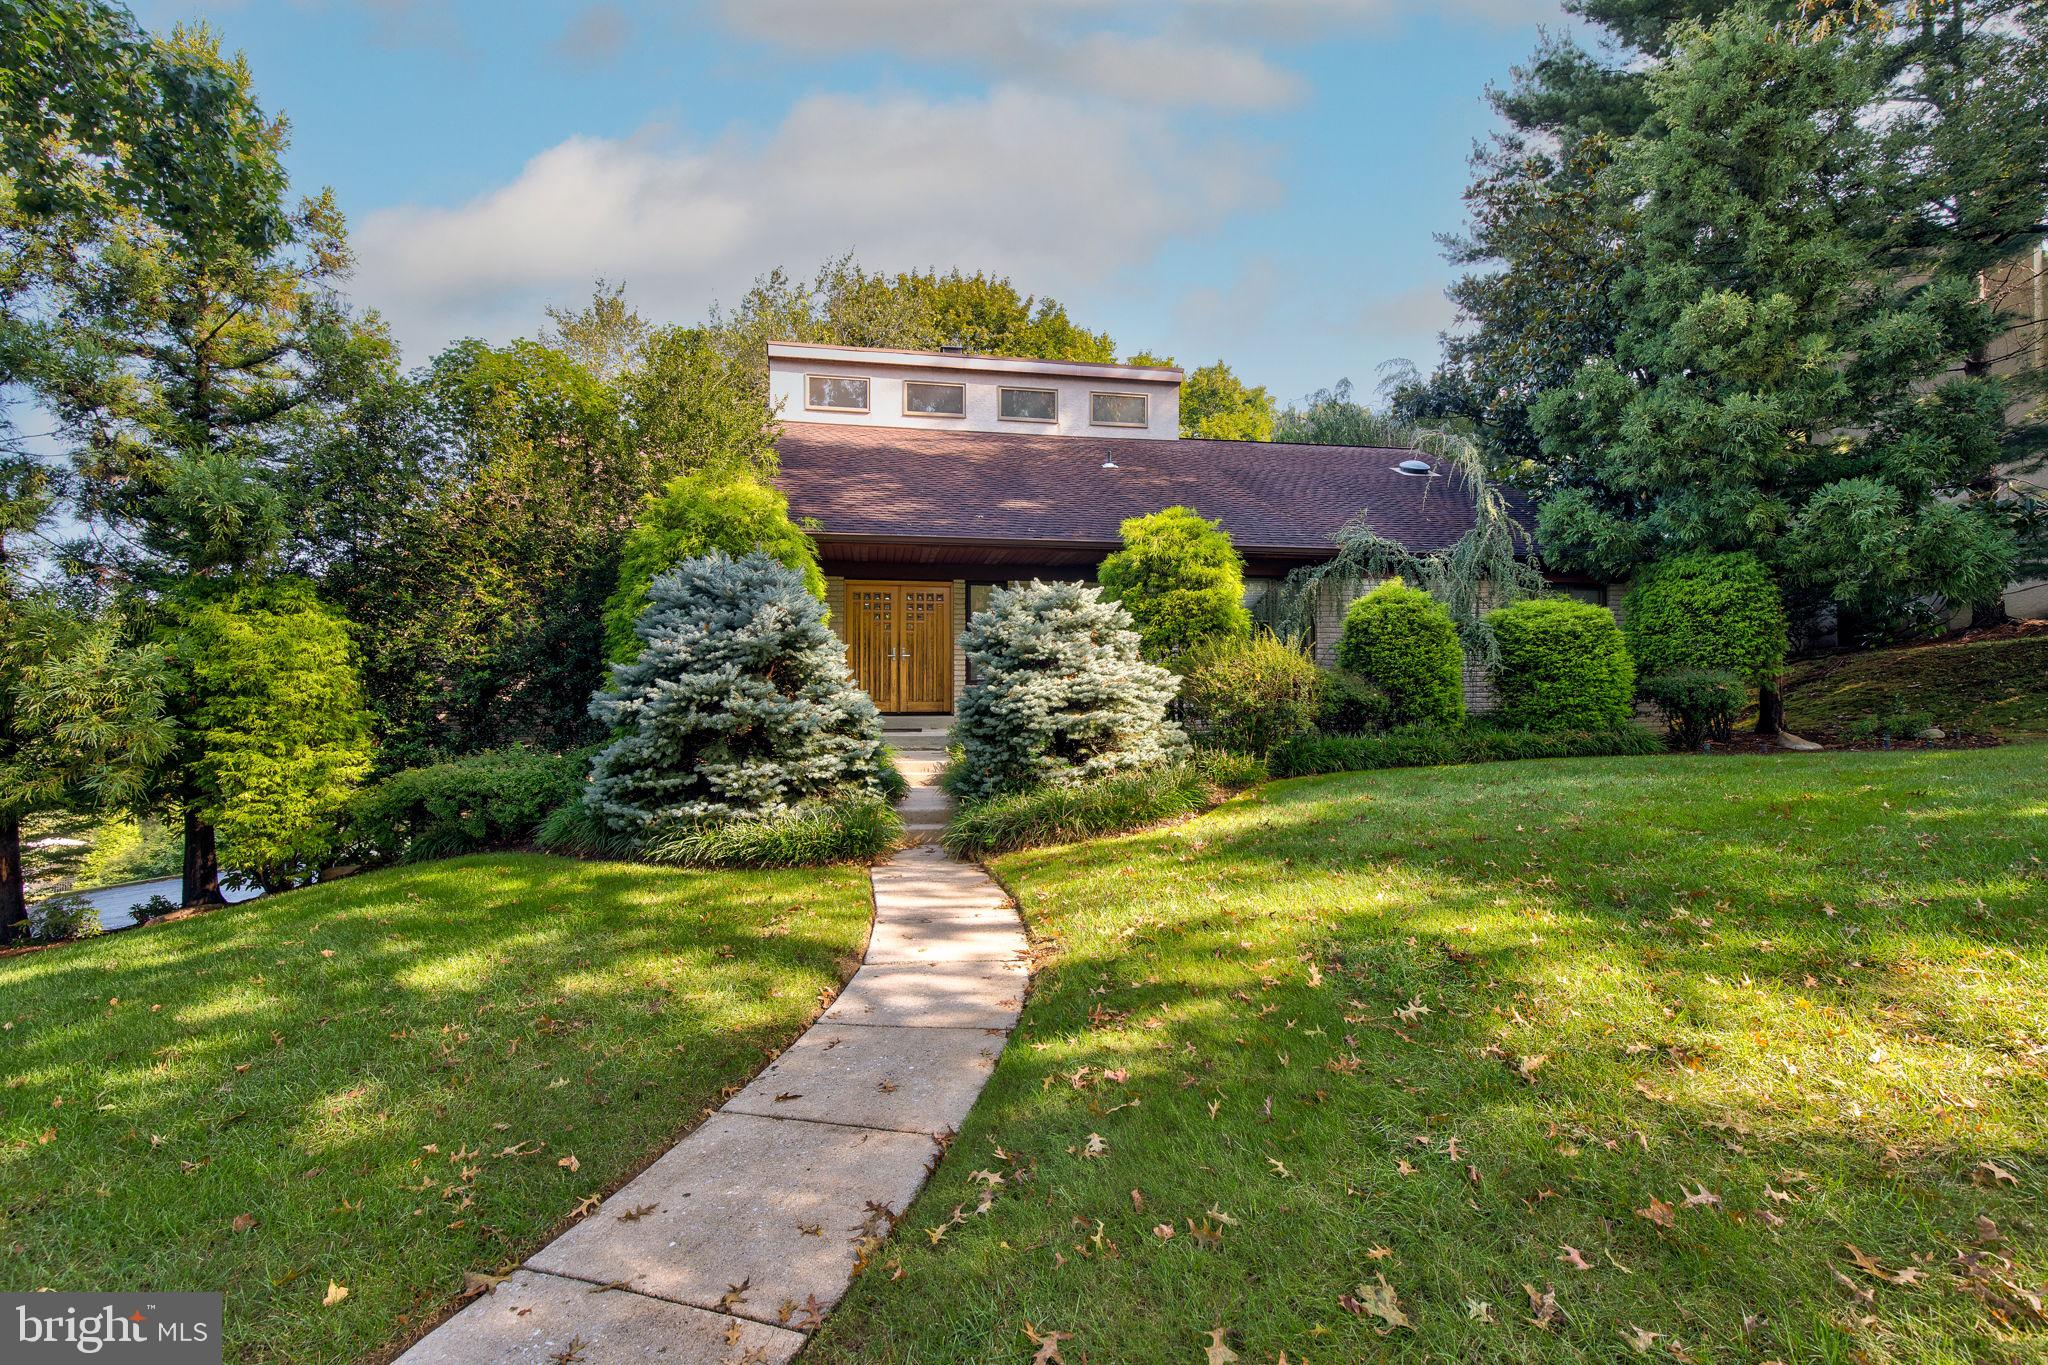 Located in sought-after Fox Fields in Bryn Mawr, this custom ranch style home has many accessible features that include an elevator, outside ramp, and modified bathrooms, all on one floor living with indoor and outdoor pools. This modern home with hardwood floors in the main living areas has a large family room with a fireplace and overlooks the pools with an outside deck for dining. The kitchen has an island and breakfast counter, all high-end appliances including a dishwasher, microwave, Sub- Zero refrigerator, trash compactor, Viking cooktop, and double sink. A formal dinning room is combined with a spacious living room for entertaining. Moving down the hallway is a powder room, laundry room, and full bath. First bedroom has good space and great closets. The master suite is a large room with built-ins, ample closets, and a bathroom with a modified shower. Connecting to the master bedroom is the 3rd bedroom that was modified and could be converted back to a full bedroom. Take a ride on the elevator to the full basement that could be a 4th bedroom or guest/in-law suite with its 2nd kitchen, many closets and storage, and full accessible bathroom. The oversized garage has room for 3 cars and plenty of yard tools and bikes. Just in case of an electrical power outage, the house has a natural gas powered generator. The outside pool area with attached hot tub offers a nice private area. This is a very special home close to the shops and restaurants of downtown Bryn Mawr, and has easy access to the Blue Route.